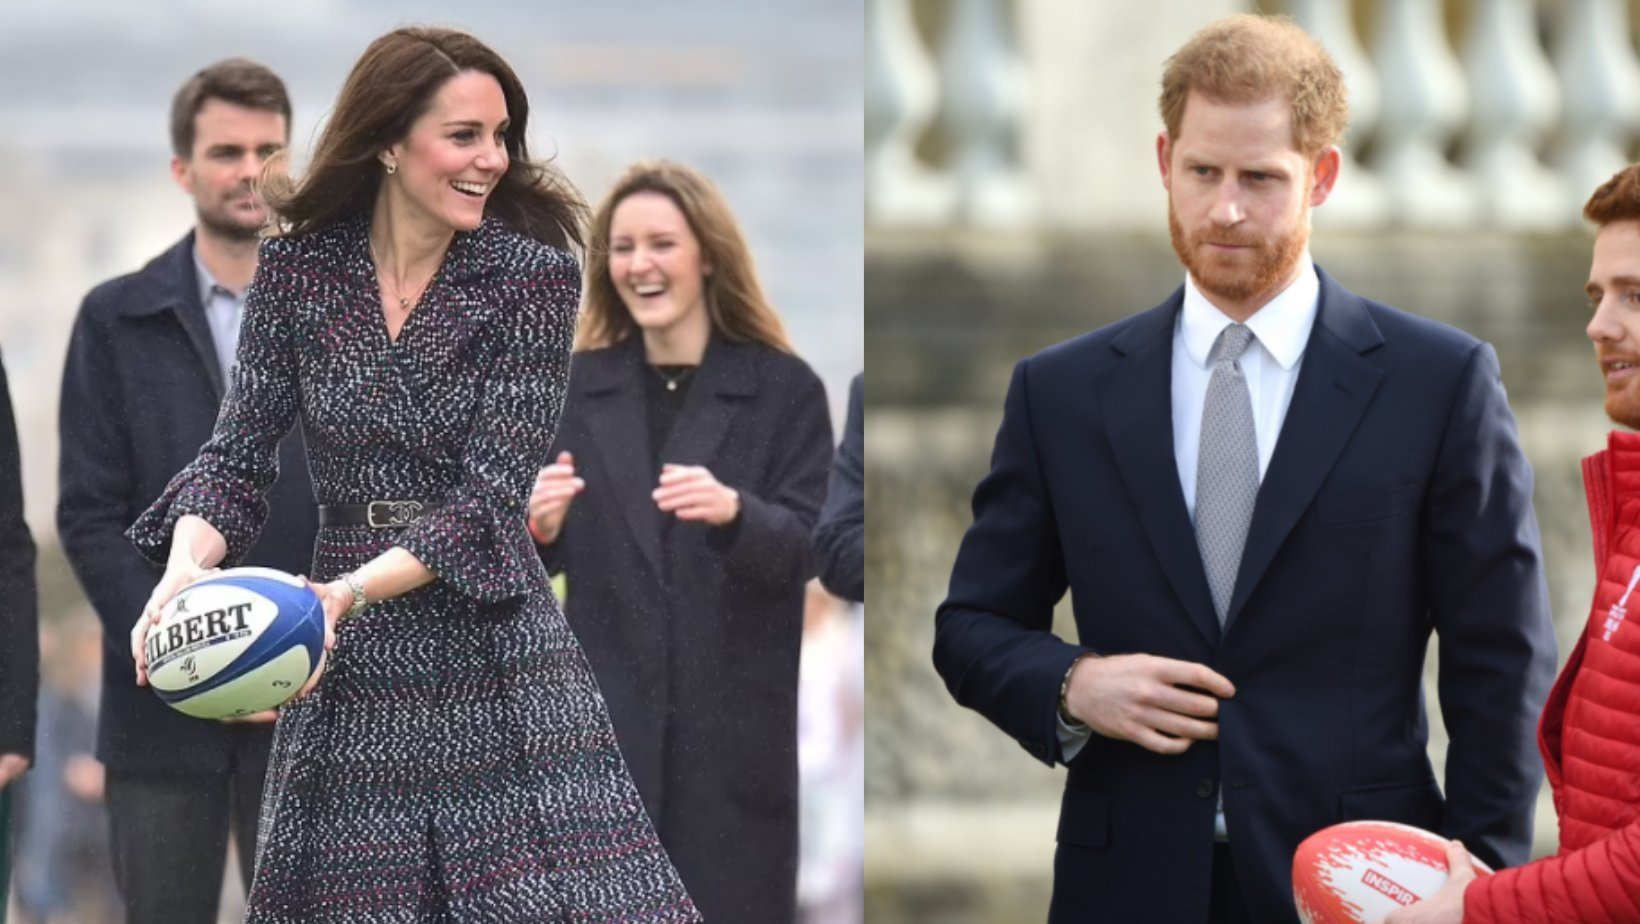 cover.png?resize=412,232 - Kate Middleton Will Replace Prince Harry As Patron Of Rugby Football & Rugby League After The Latter Was Stripped Of Honorary Roles By The Queen